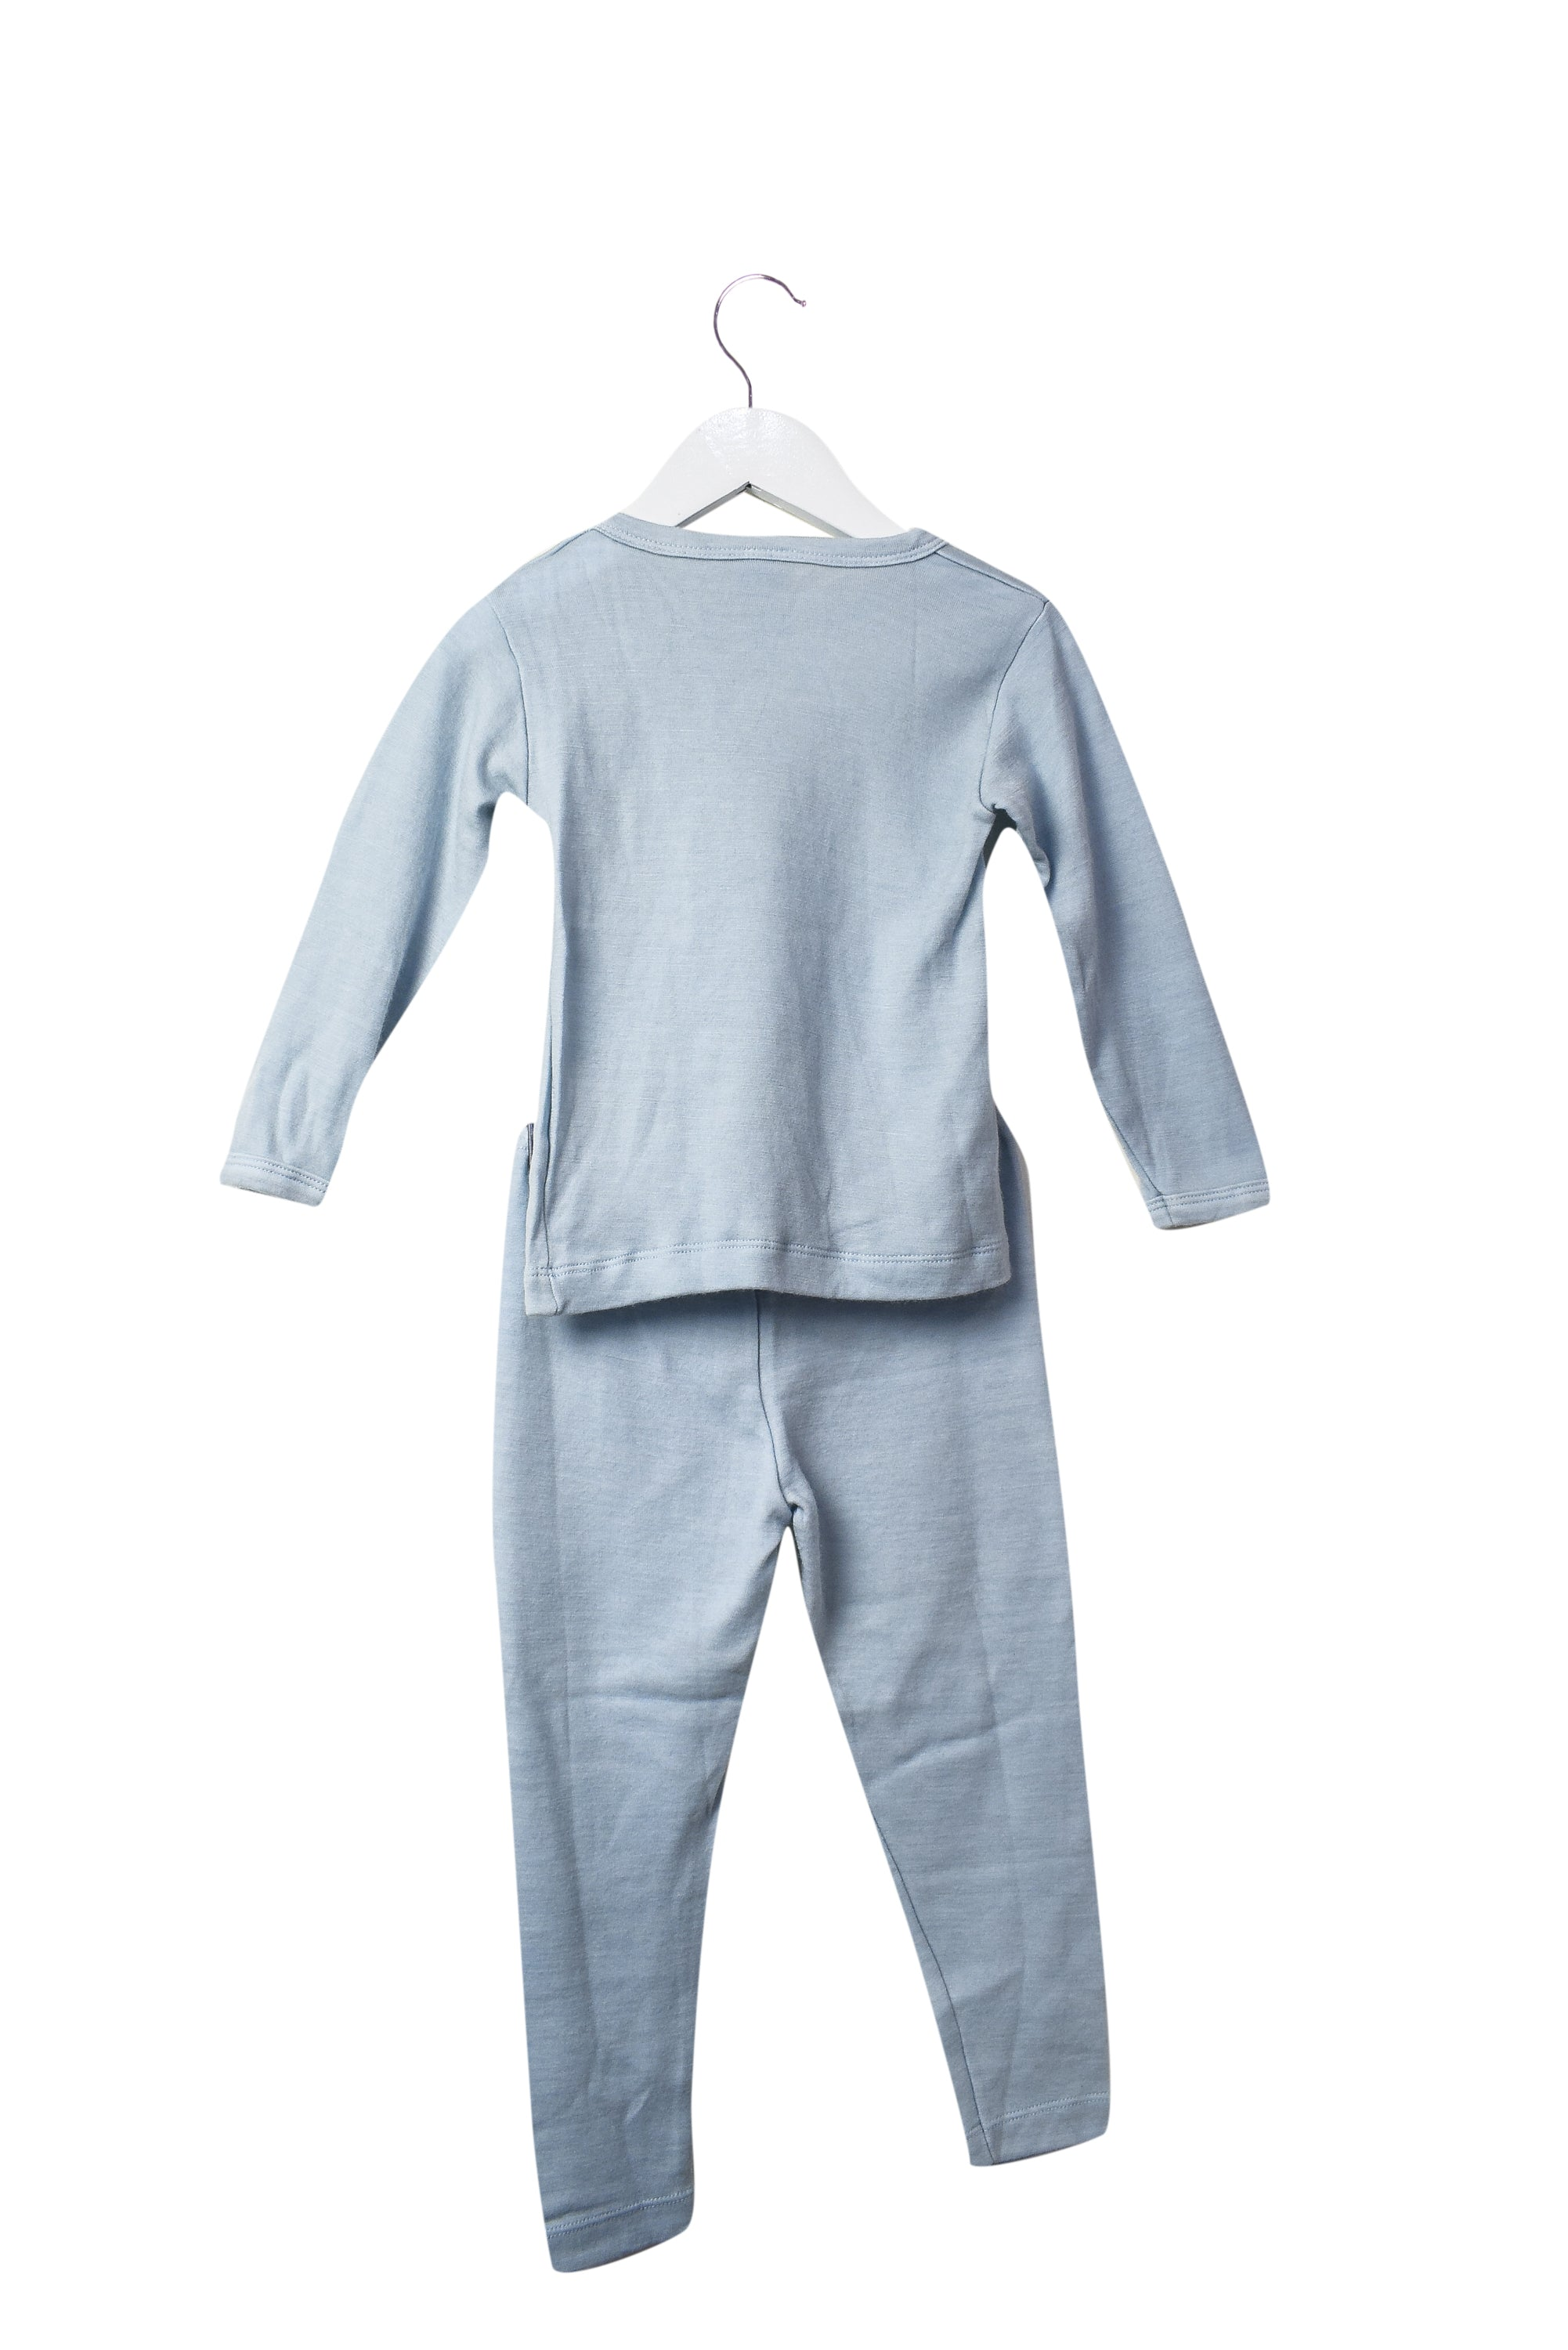 10044309 Petit Bateau Kids~Pyjama Set 3T at Retykle